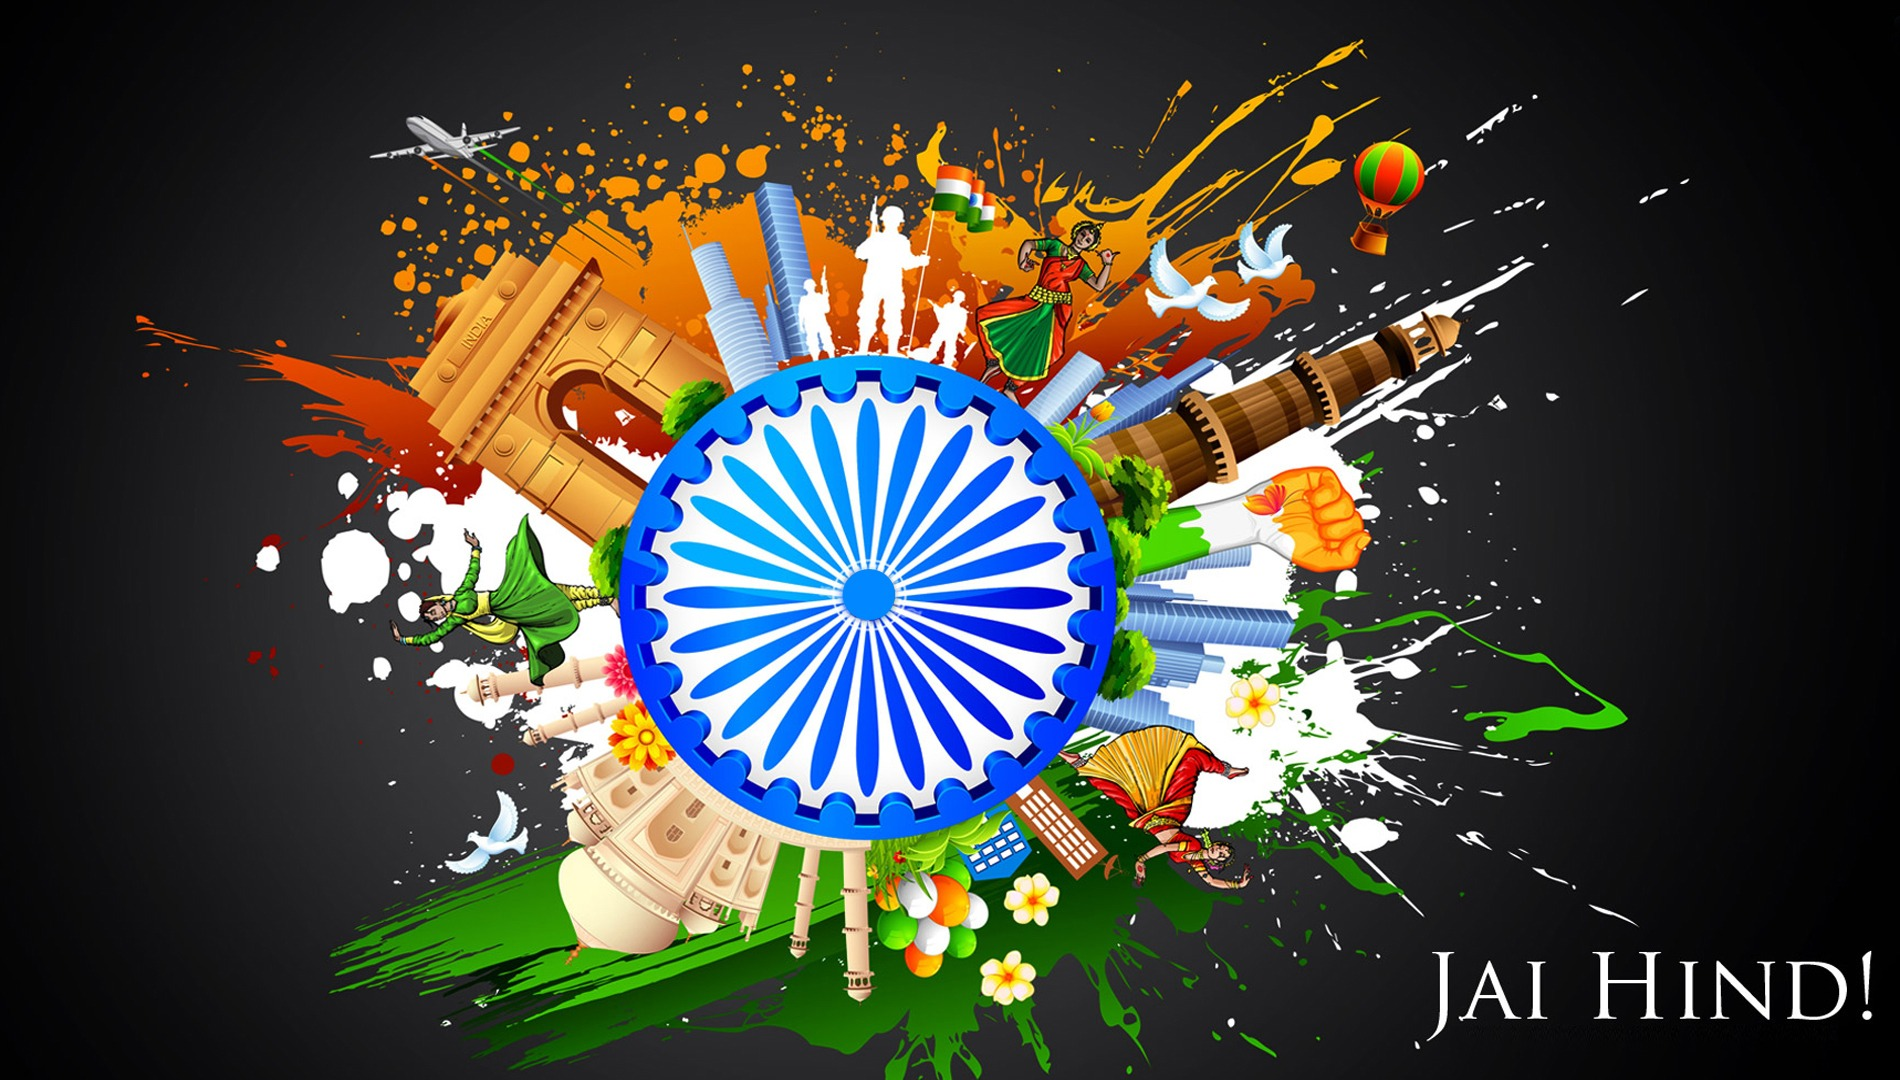 15 August Independence Day 2019 Wishes, Quotes, Messages & WhatsApp Status